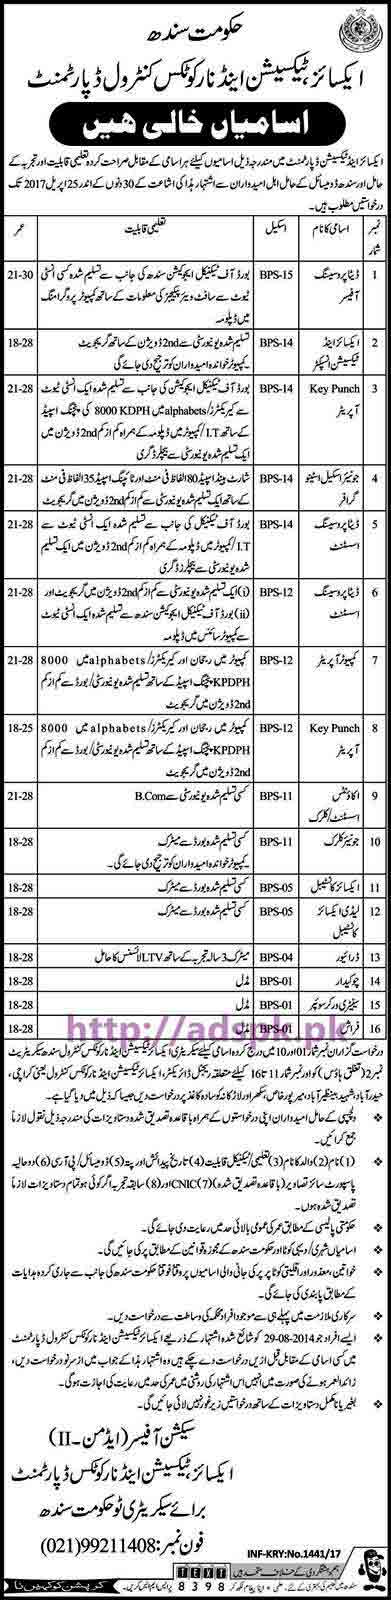 New Career Jobs Govt. of Sindh Excise Taxation and Narcotics Control Department Jobs for BPS-01 to BPS-15 Jobs Data Processing Officer Excise & Taxation Inspector KPO Stenographer and Other Staff Application Deadline 25-04-2017 Apply Now